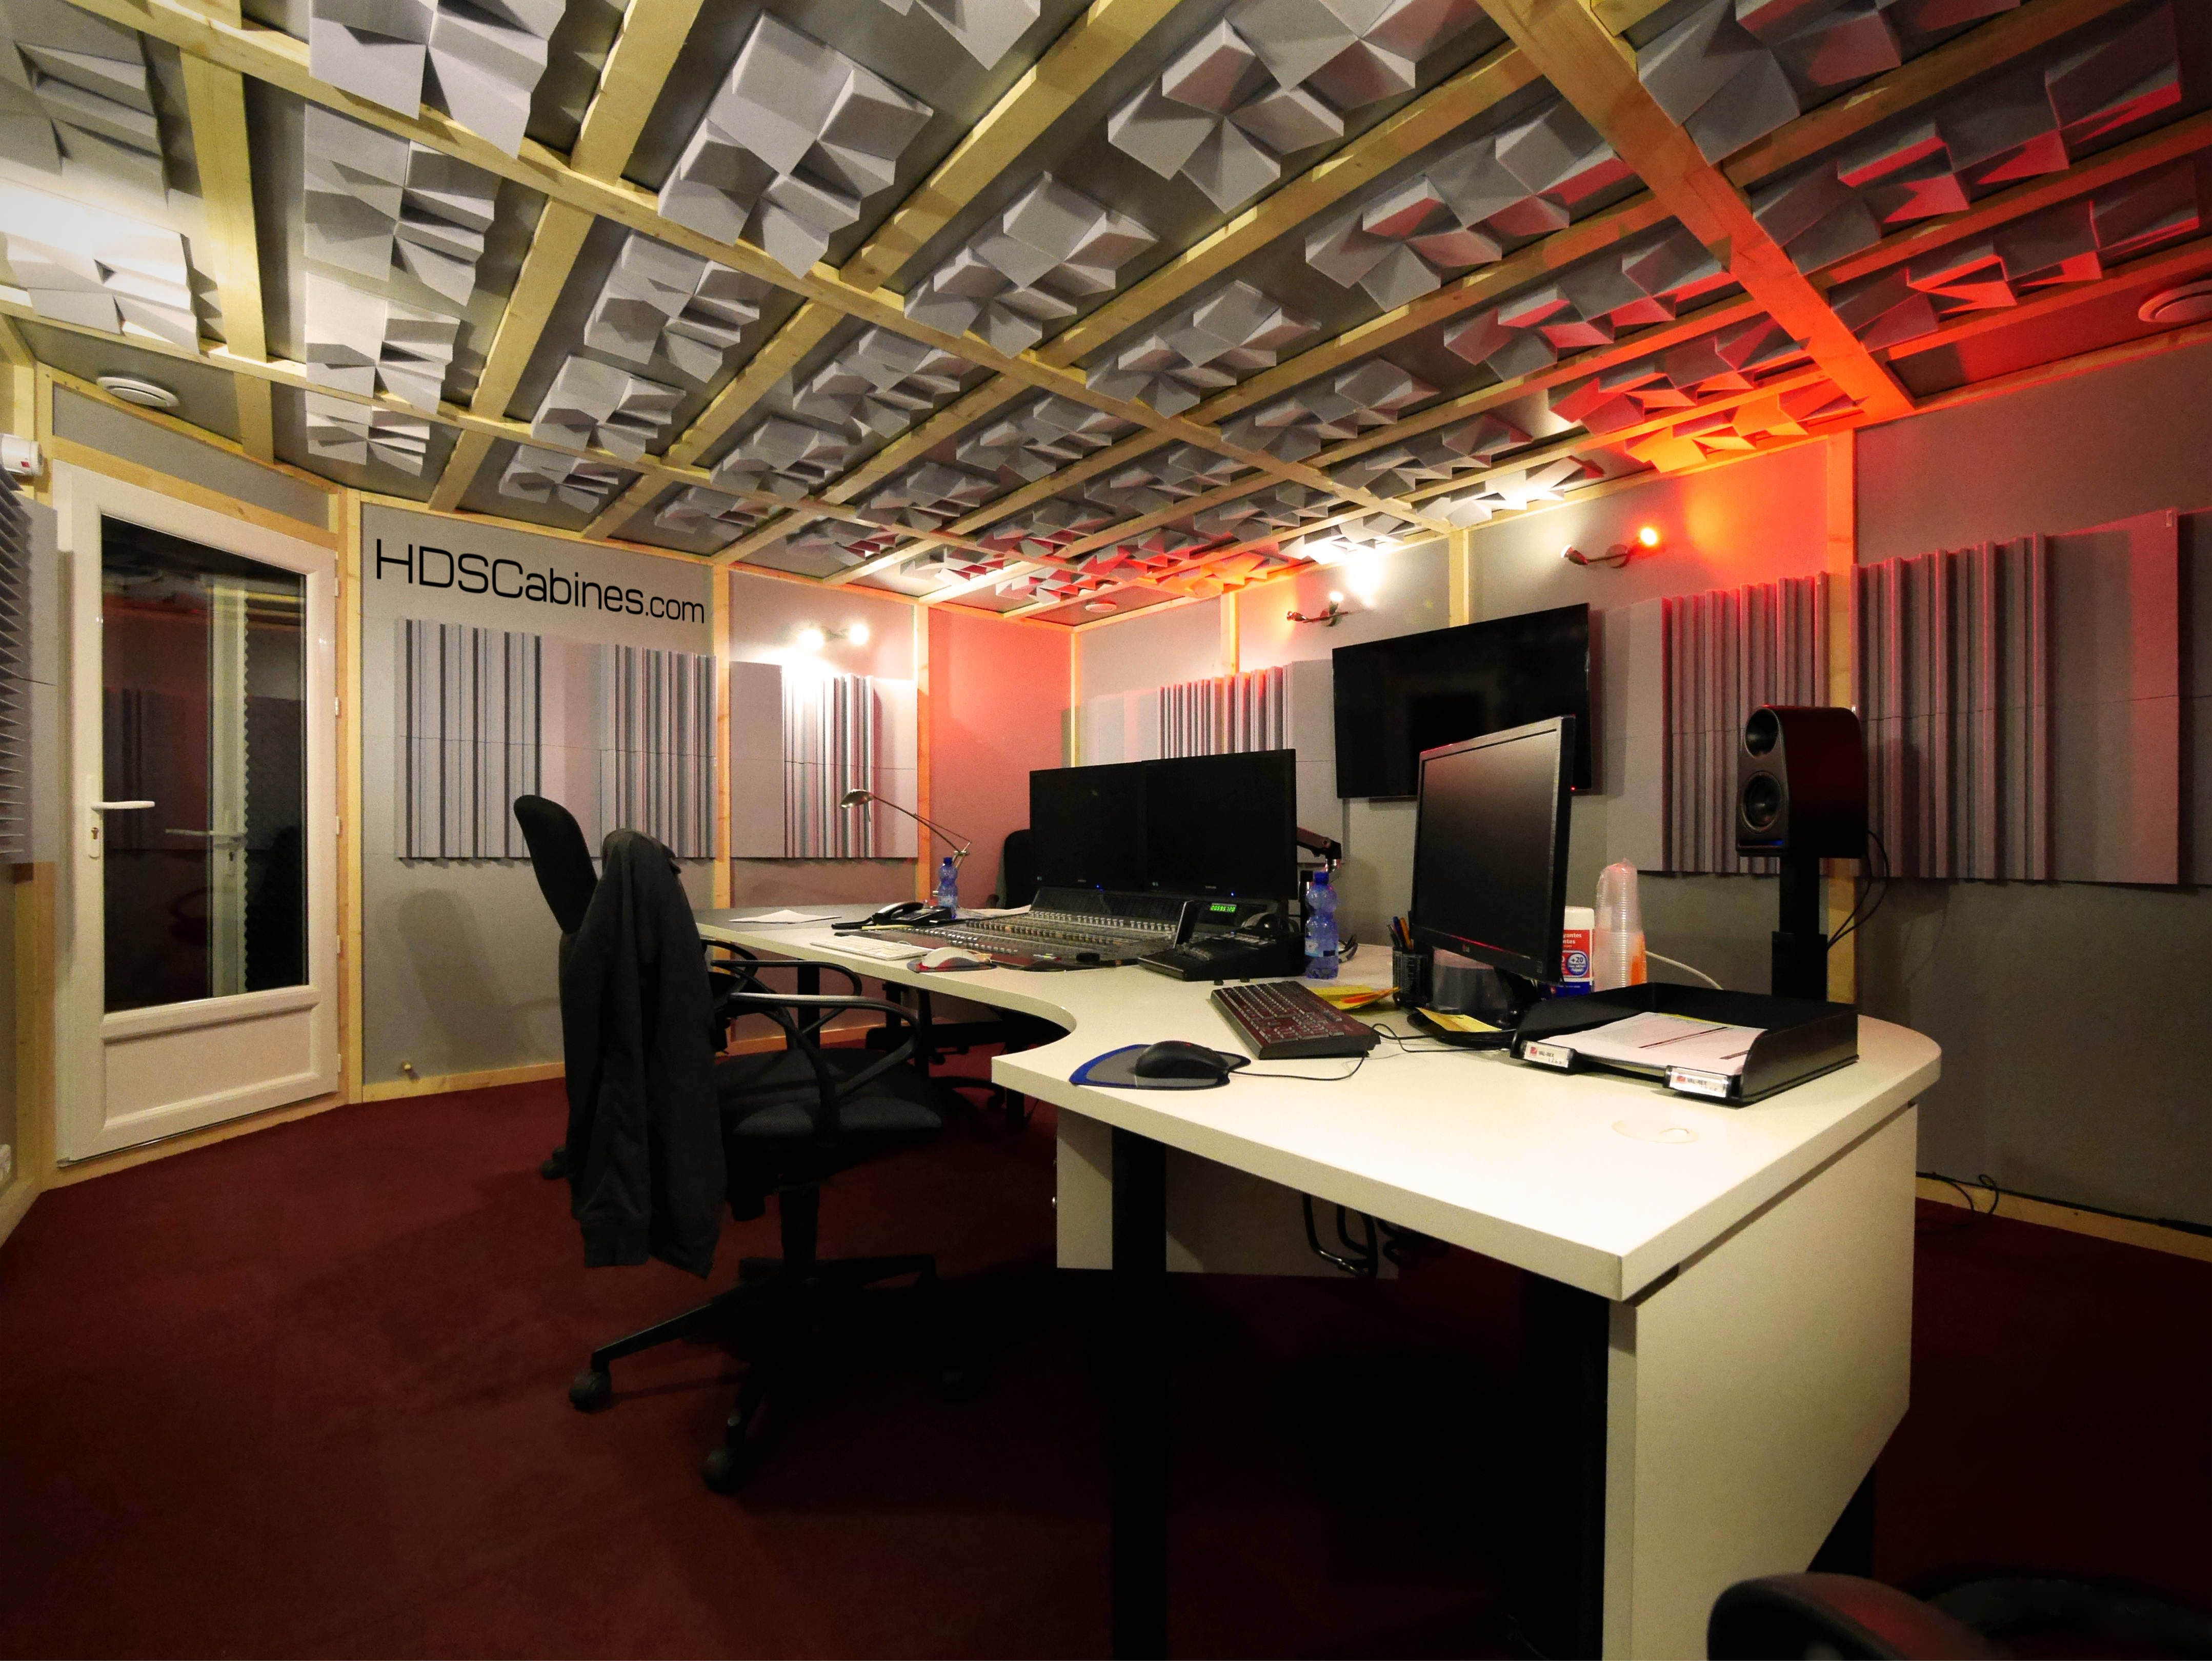 studio recording studio acoustic booth acoustic isolation booth